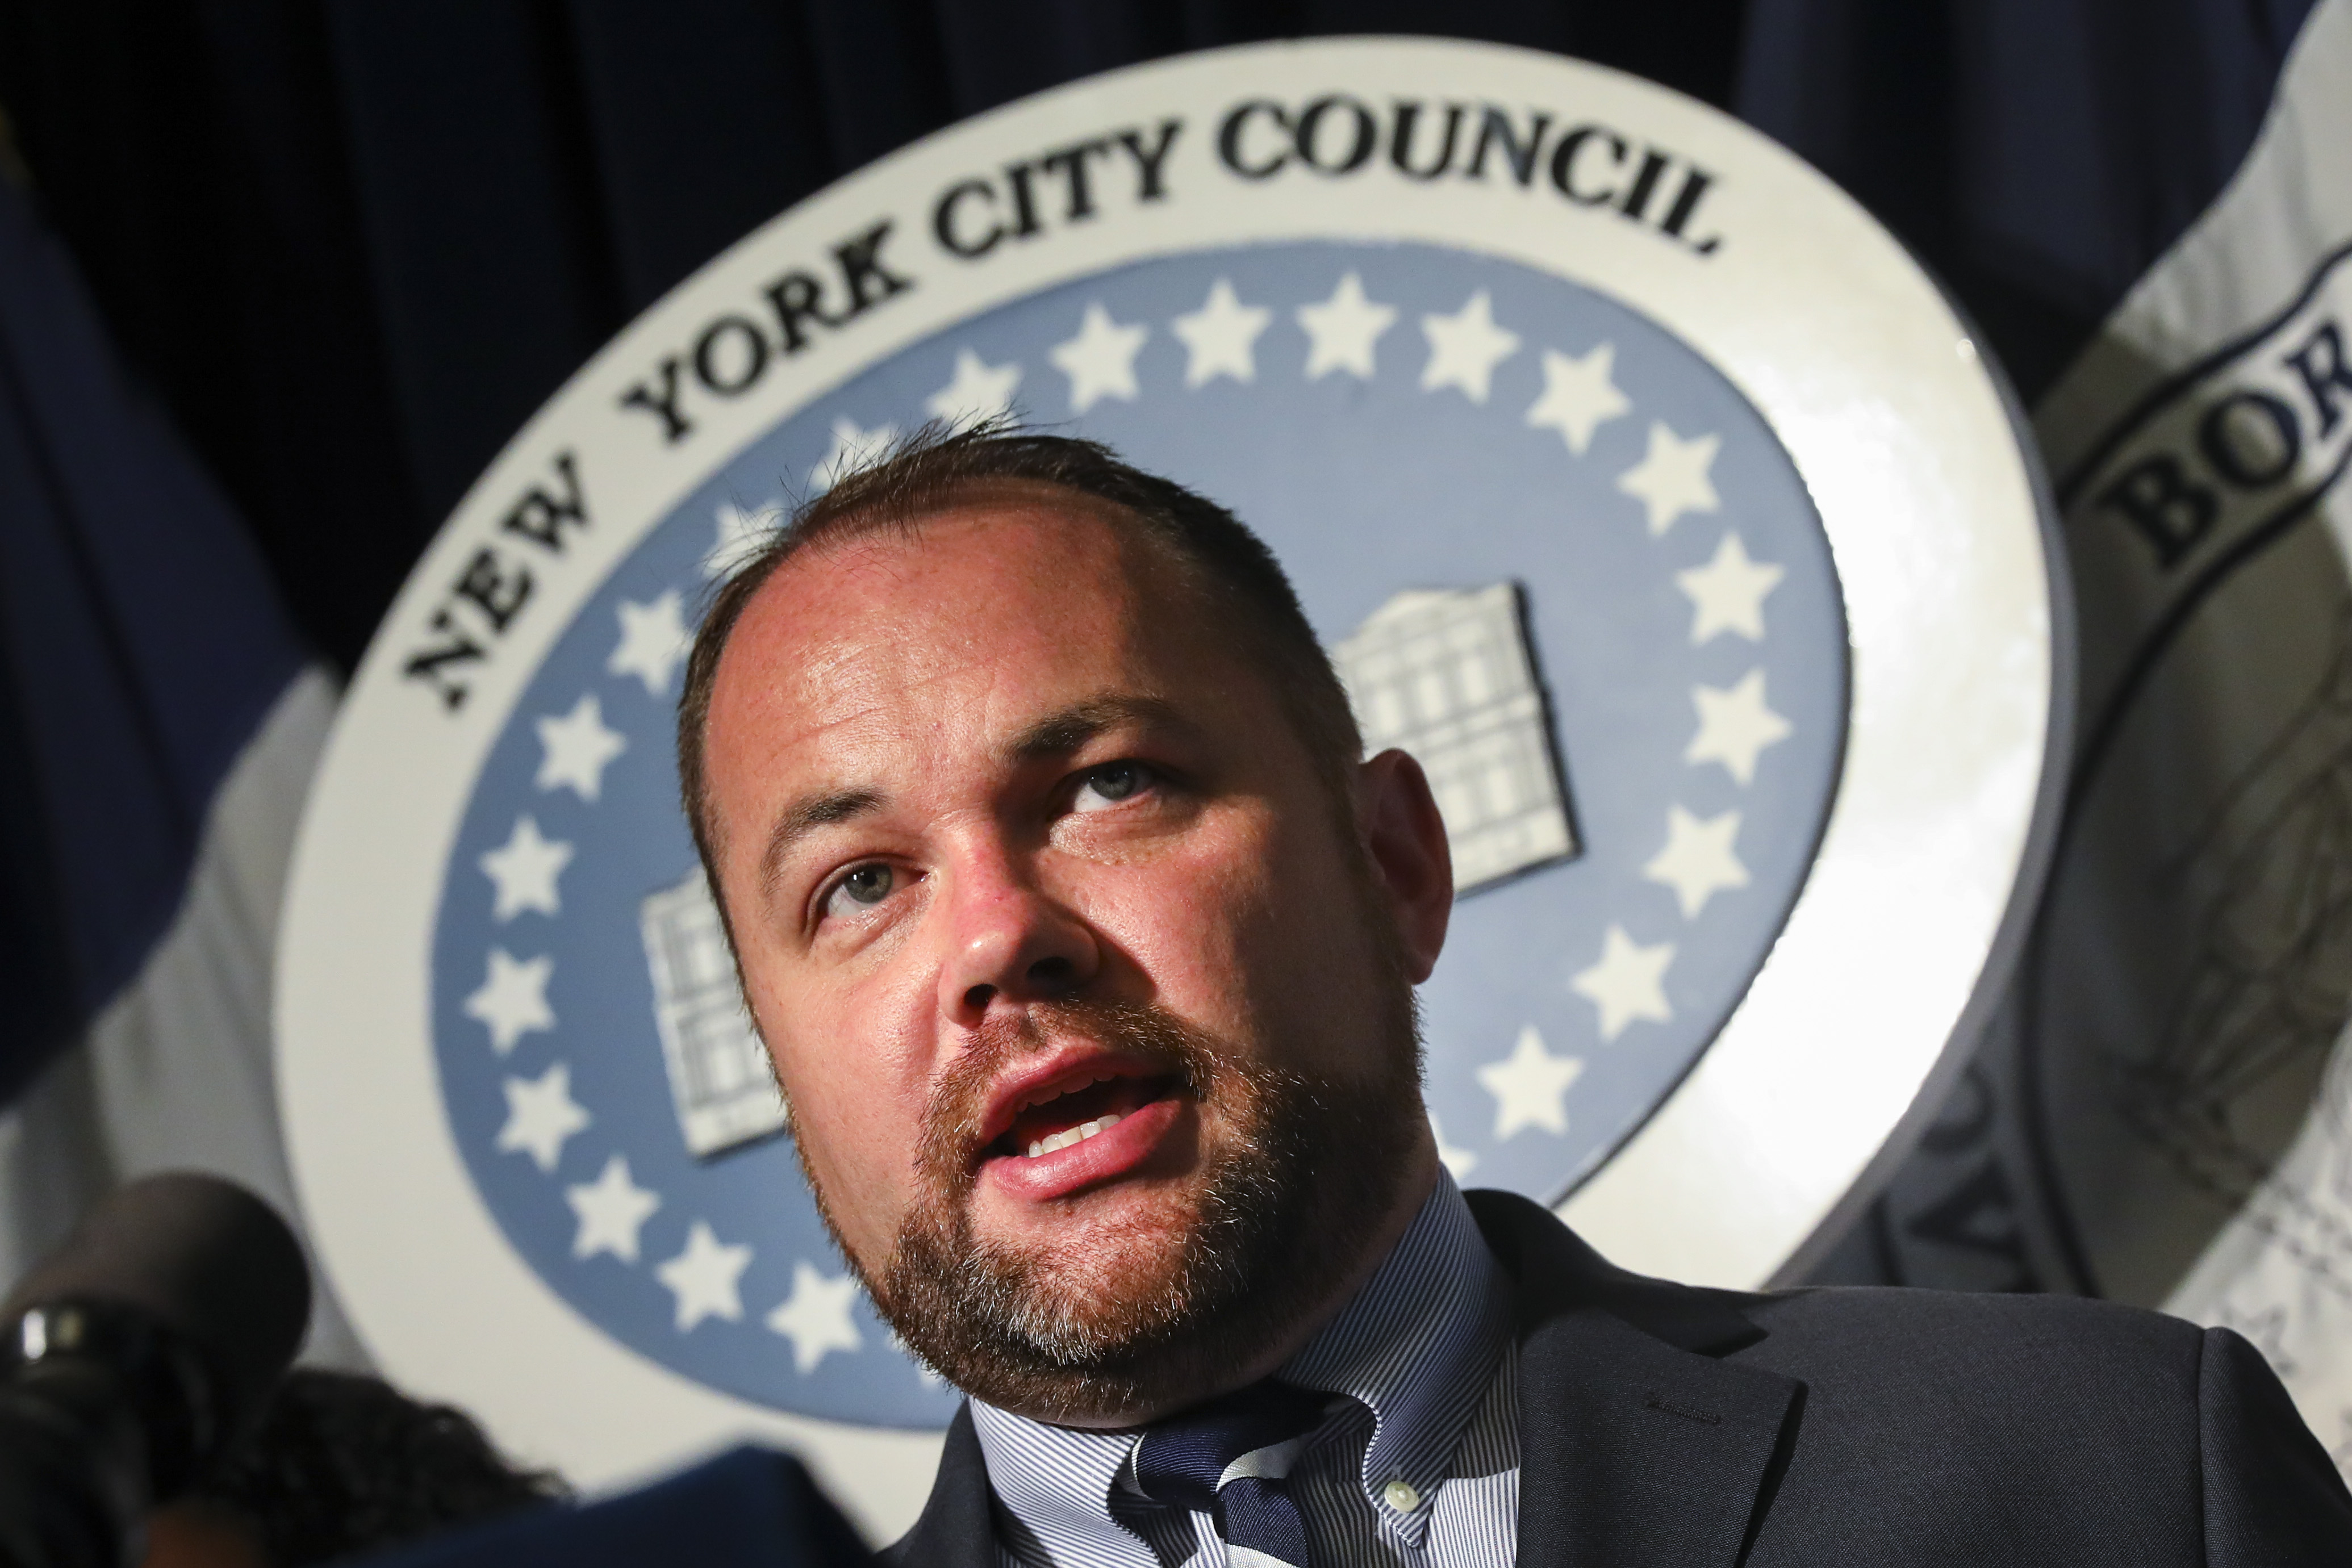 Corey Johnson crafts bill to 'completely revolutionize' the city's streets